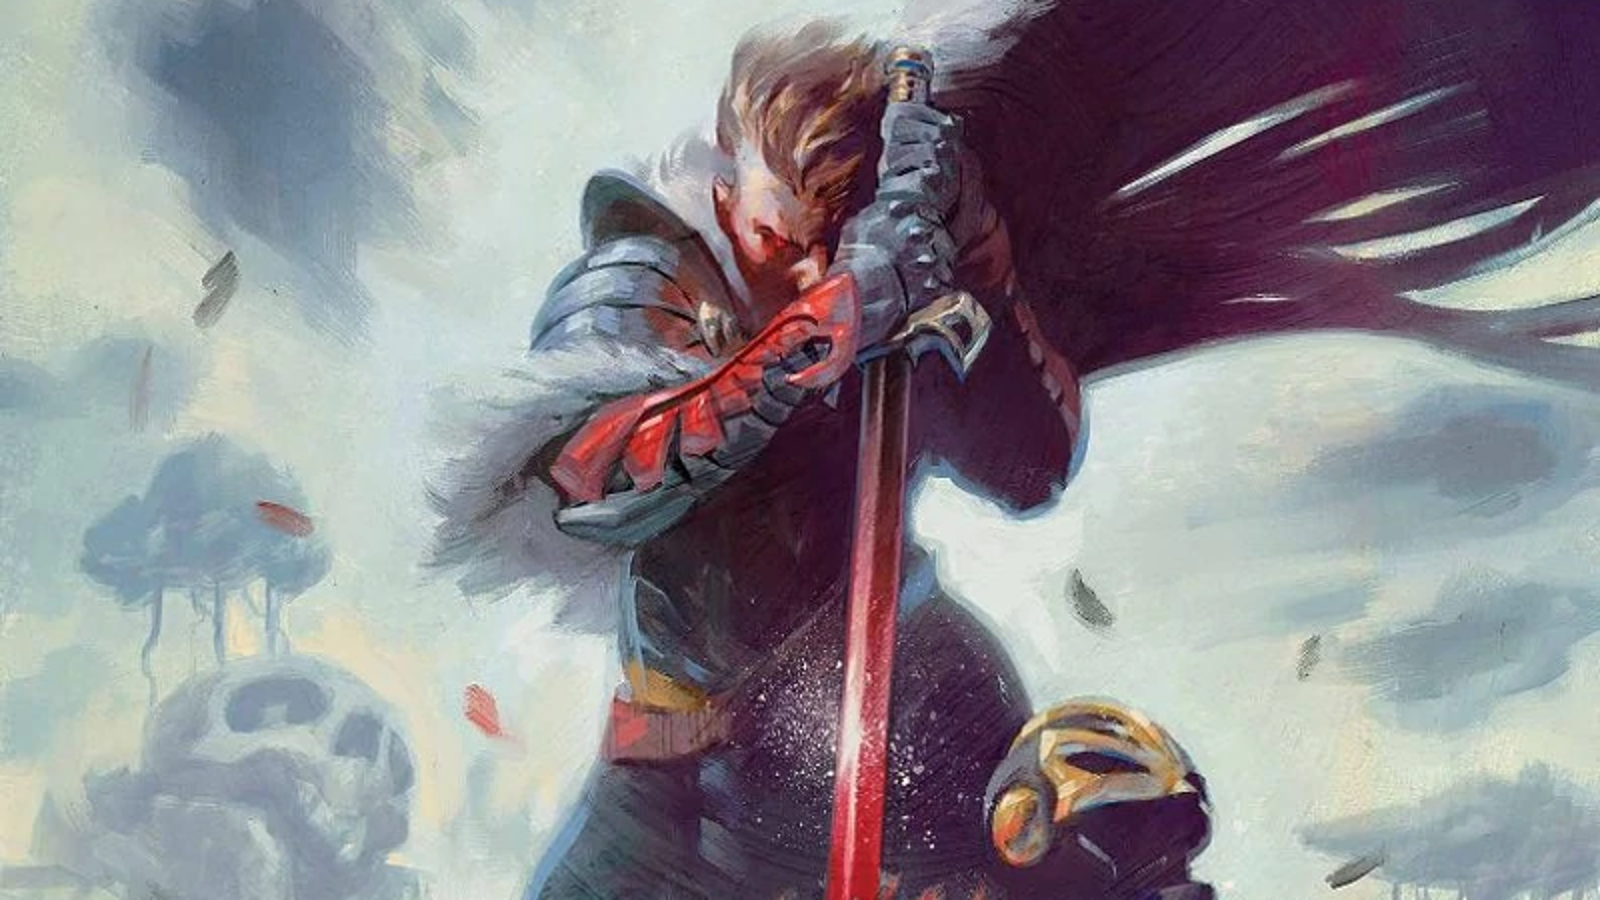 What You Need to Know About the Black Knight, Kit Harington's Side-Step From Game of Thrones to the MCU